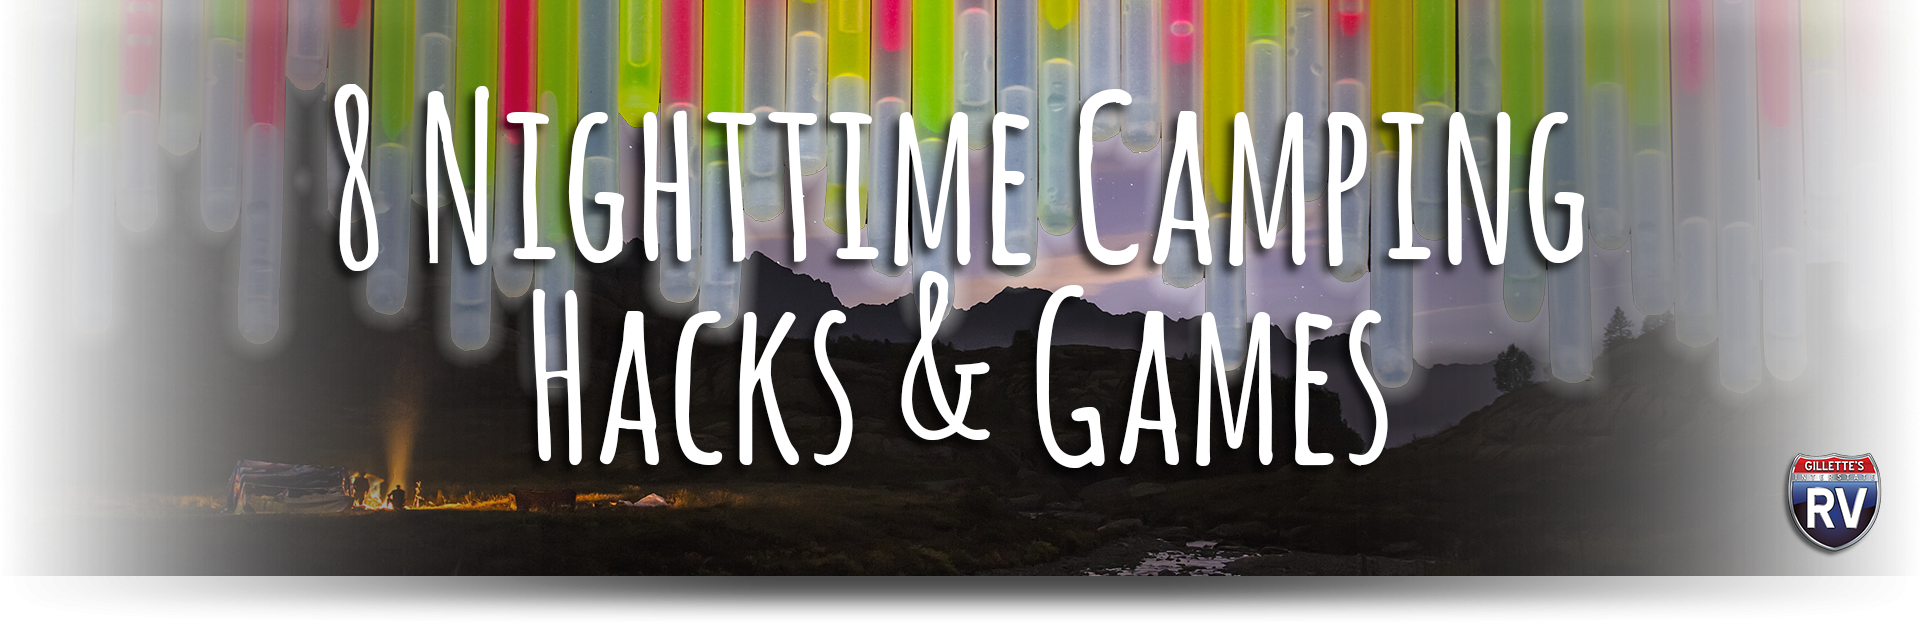 8 Nighttime Camping Hacks and Games